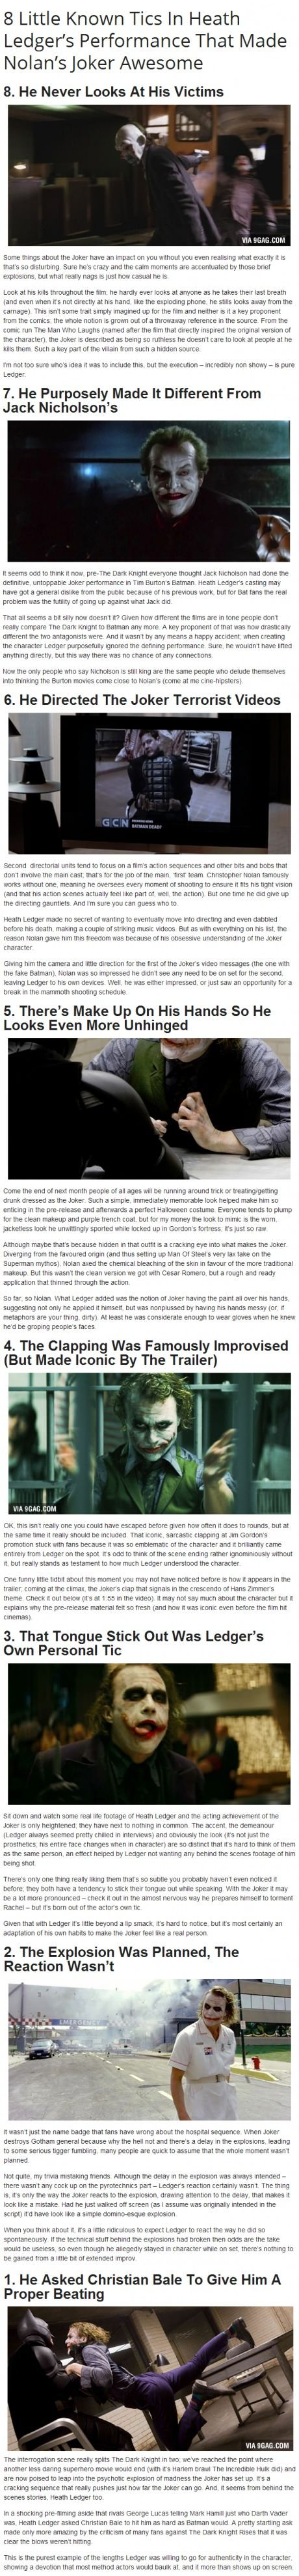 If you ask me, Heath Ledger made the Joker character untouchable for the next generation. Seriously. He was incredible.: